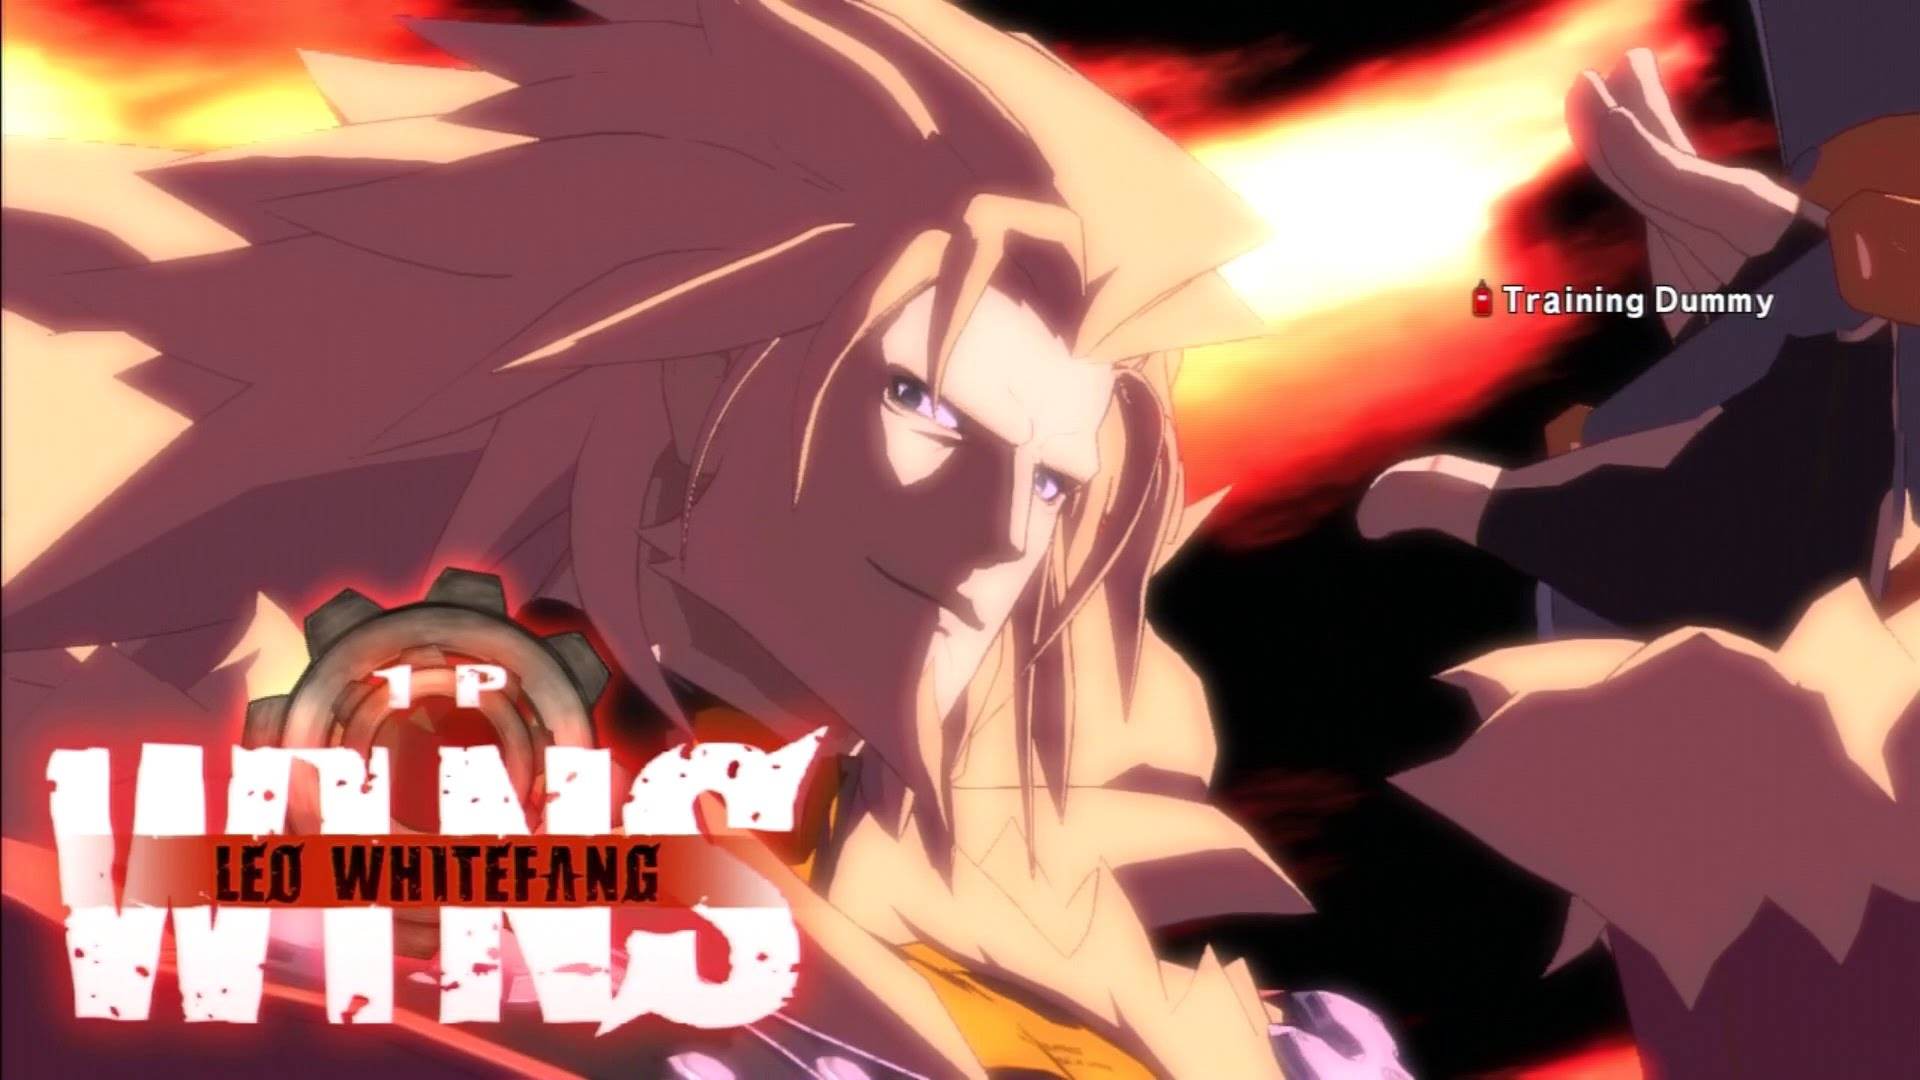 Guilty Gear: Leo Whitefang Full hd wallpapers